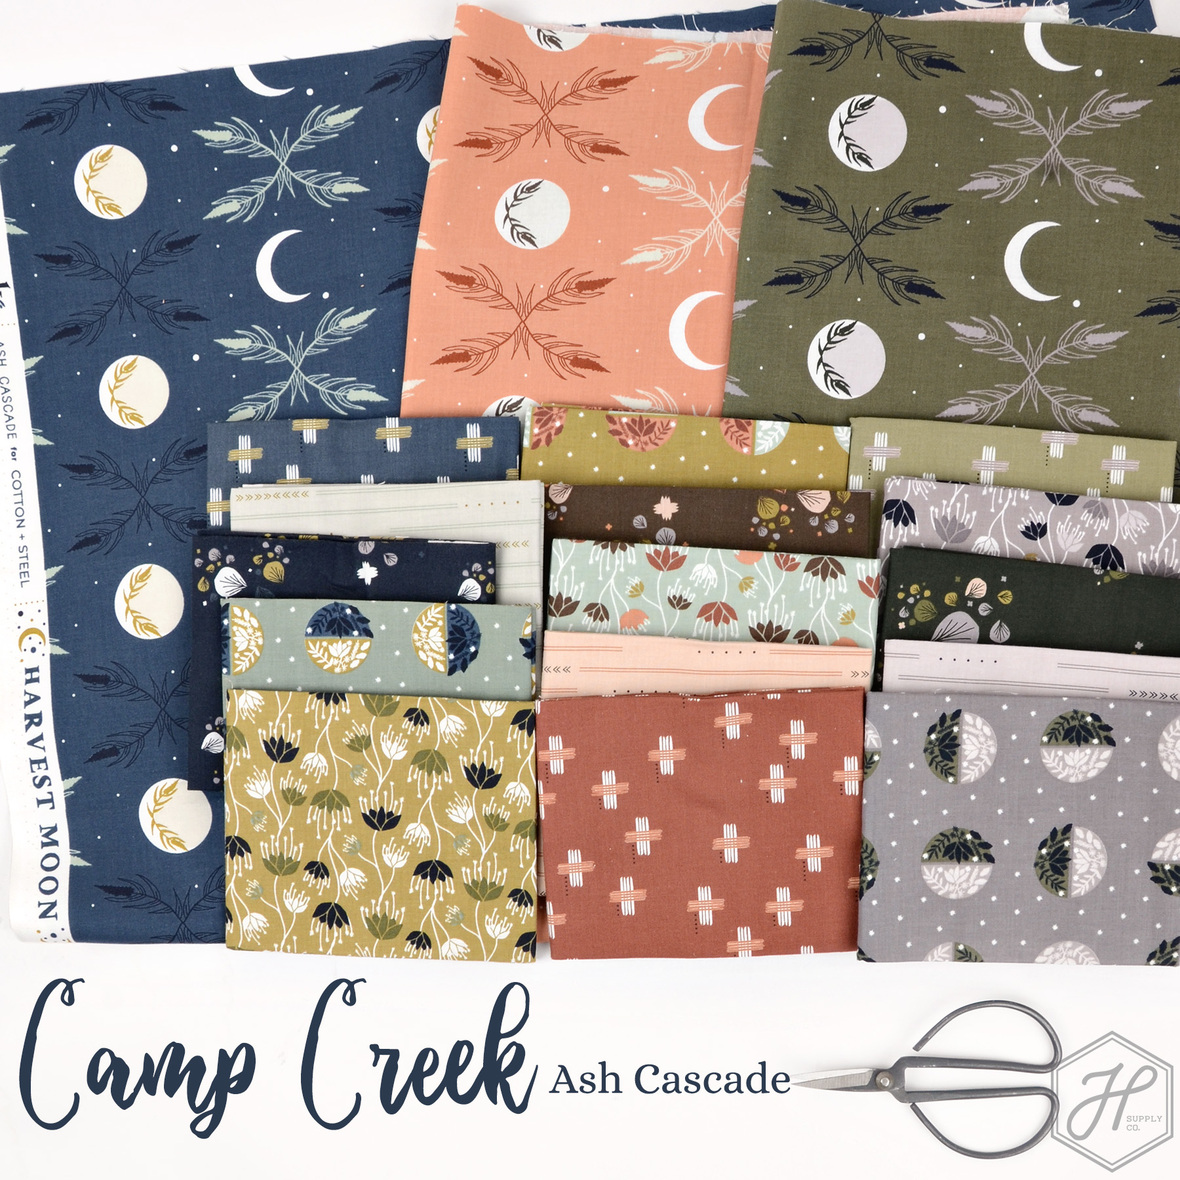 Camp Creek fabric Ash Cascade for Cotton and Steel at Hawthorne Supply Co